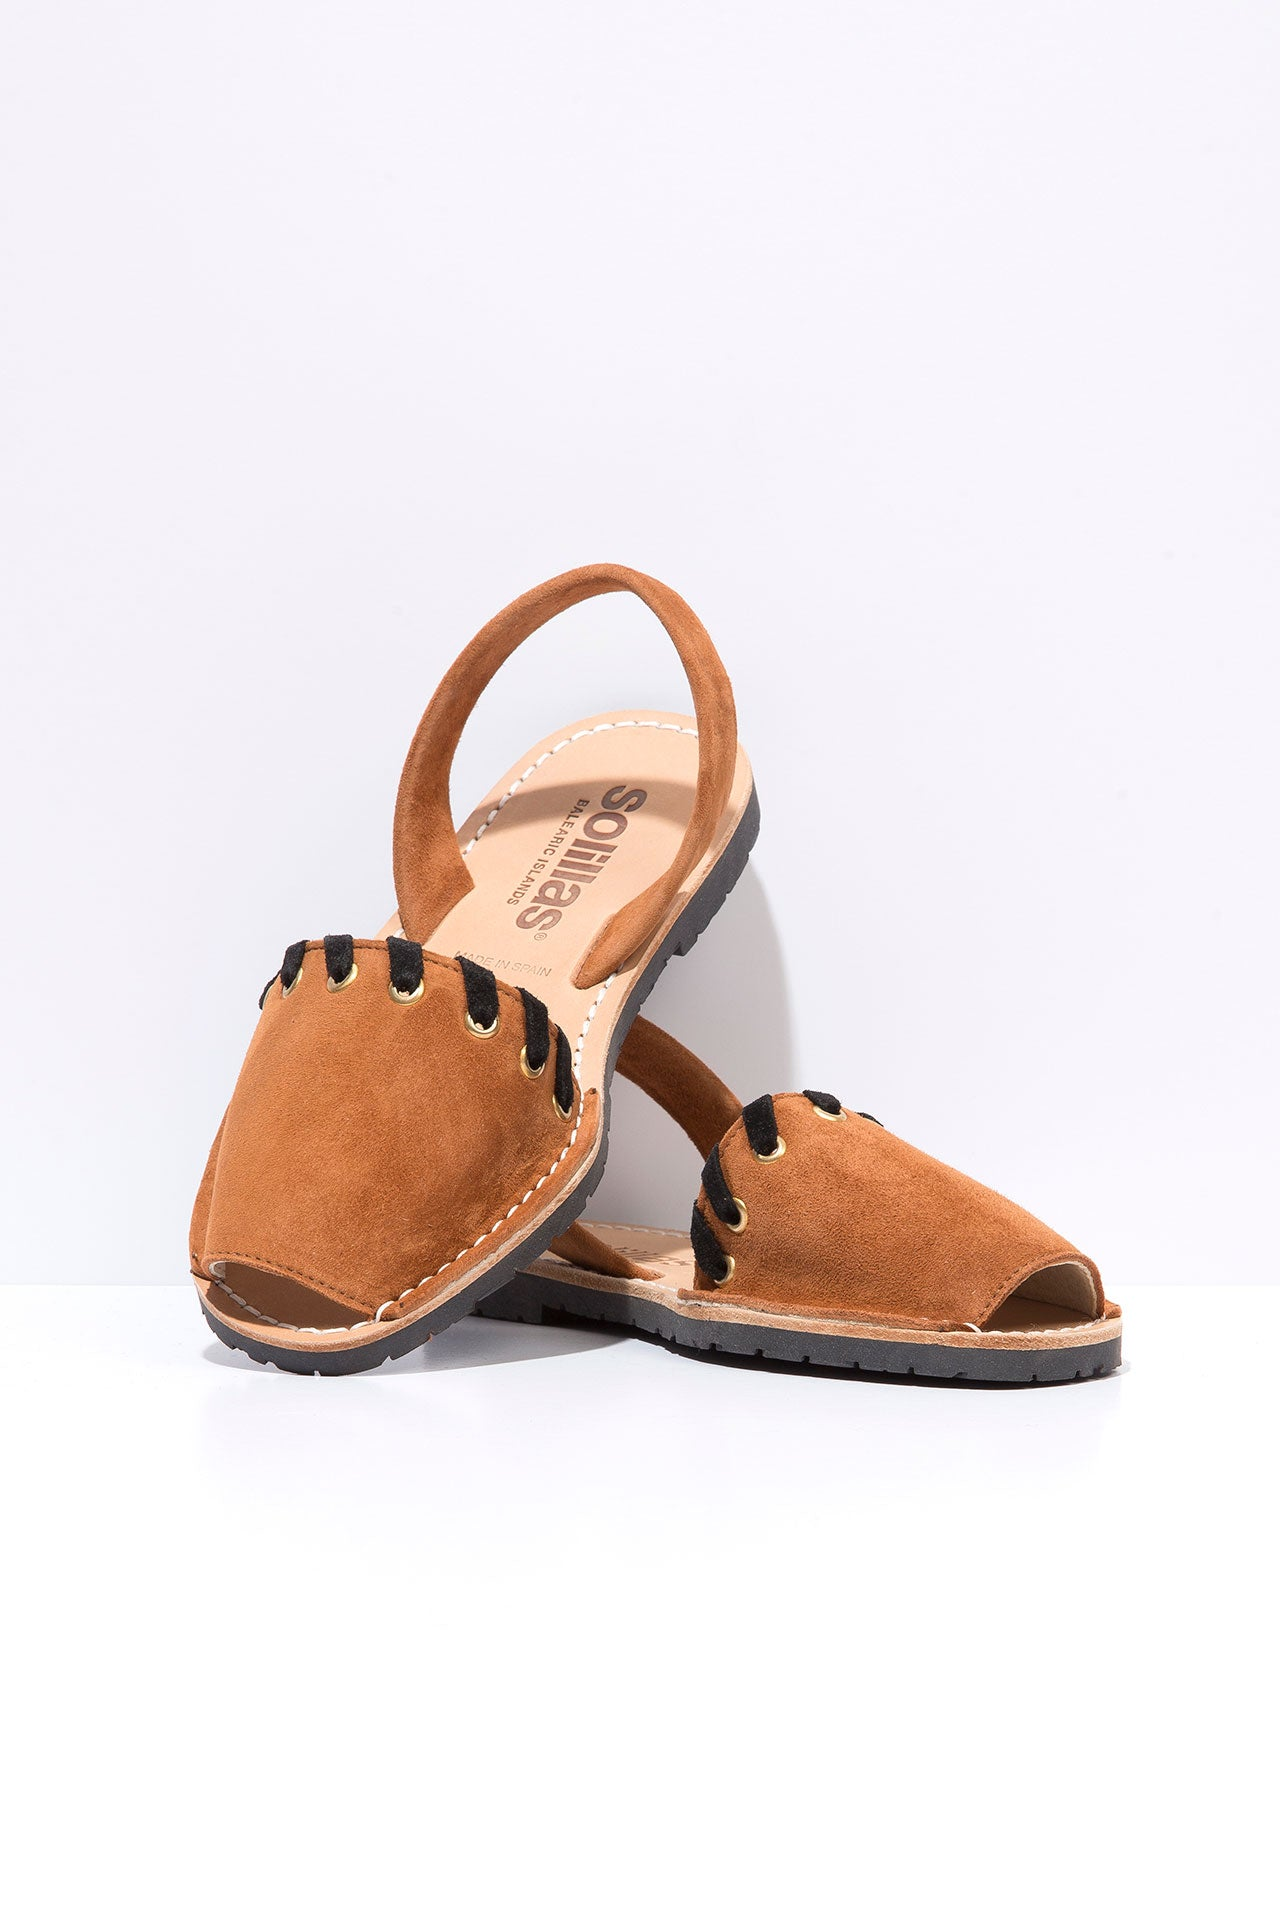 3d64469fd22f Vaquero Tan - Whipstitch Leather Menorcan sandals